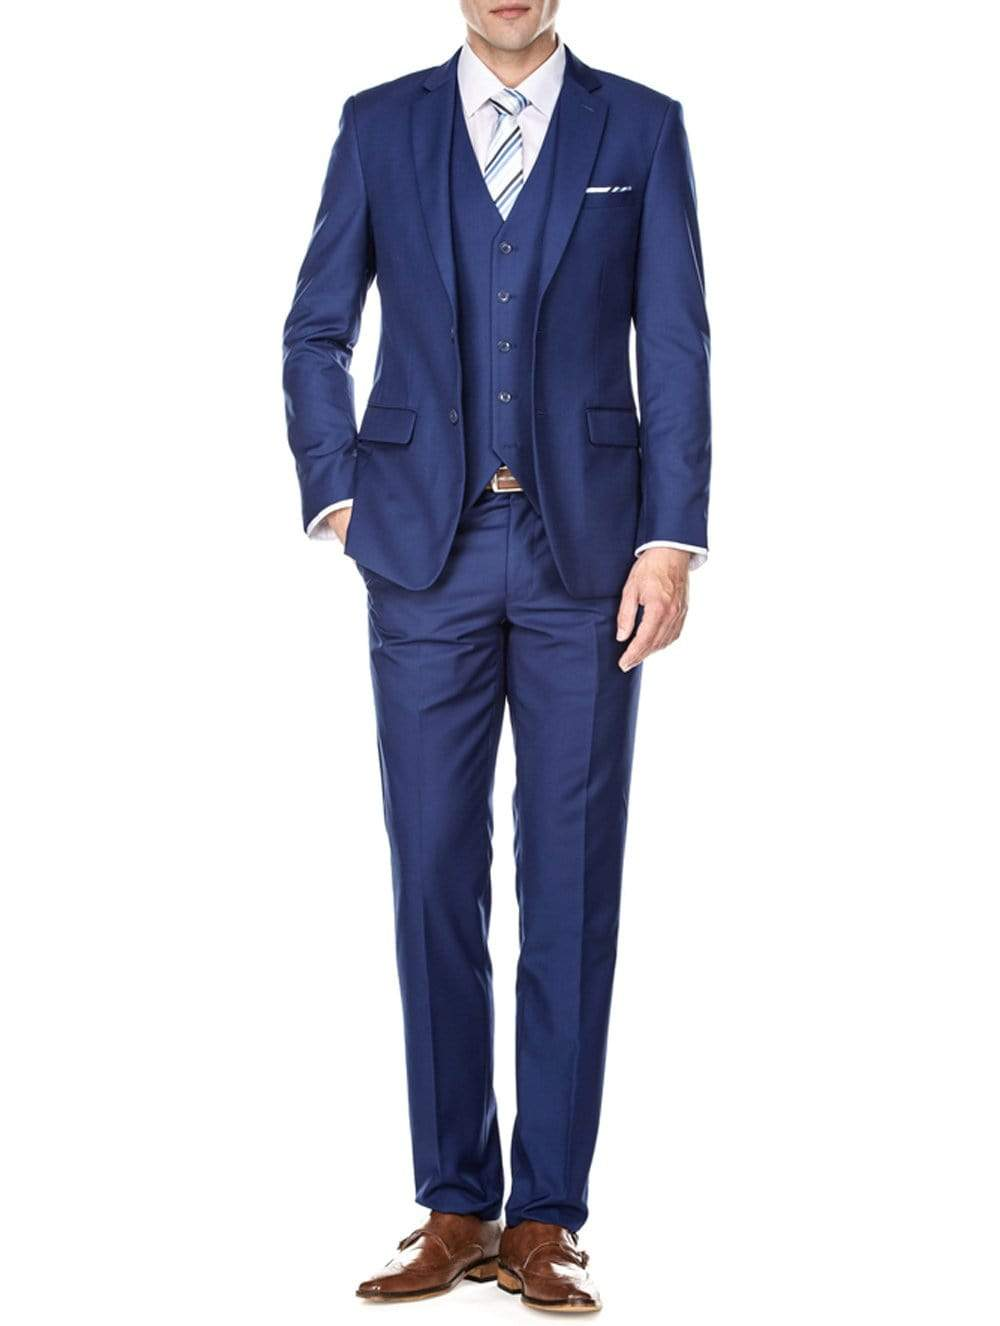 DAILY HAUTE Men's Suits INDIGO / 36Rx30W Braveman Men's Slim Fit 3PC Solid Suits